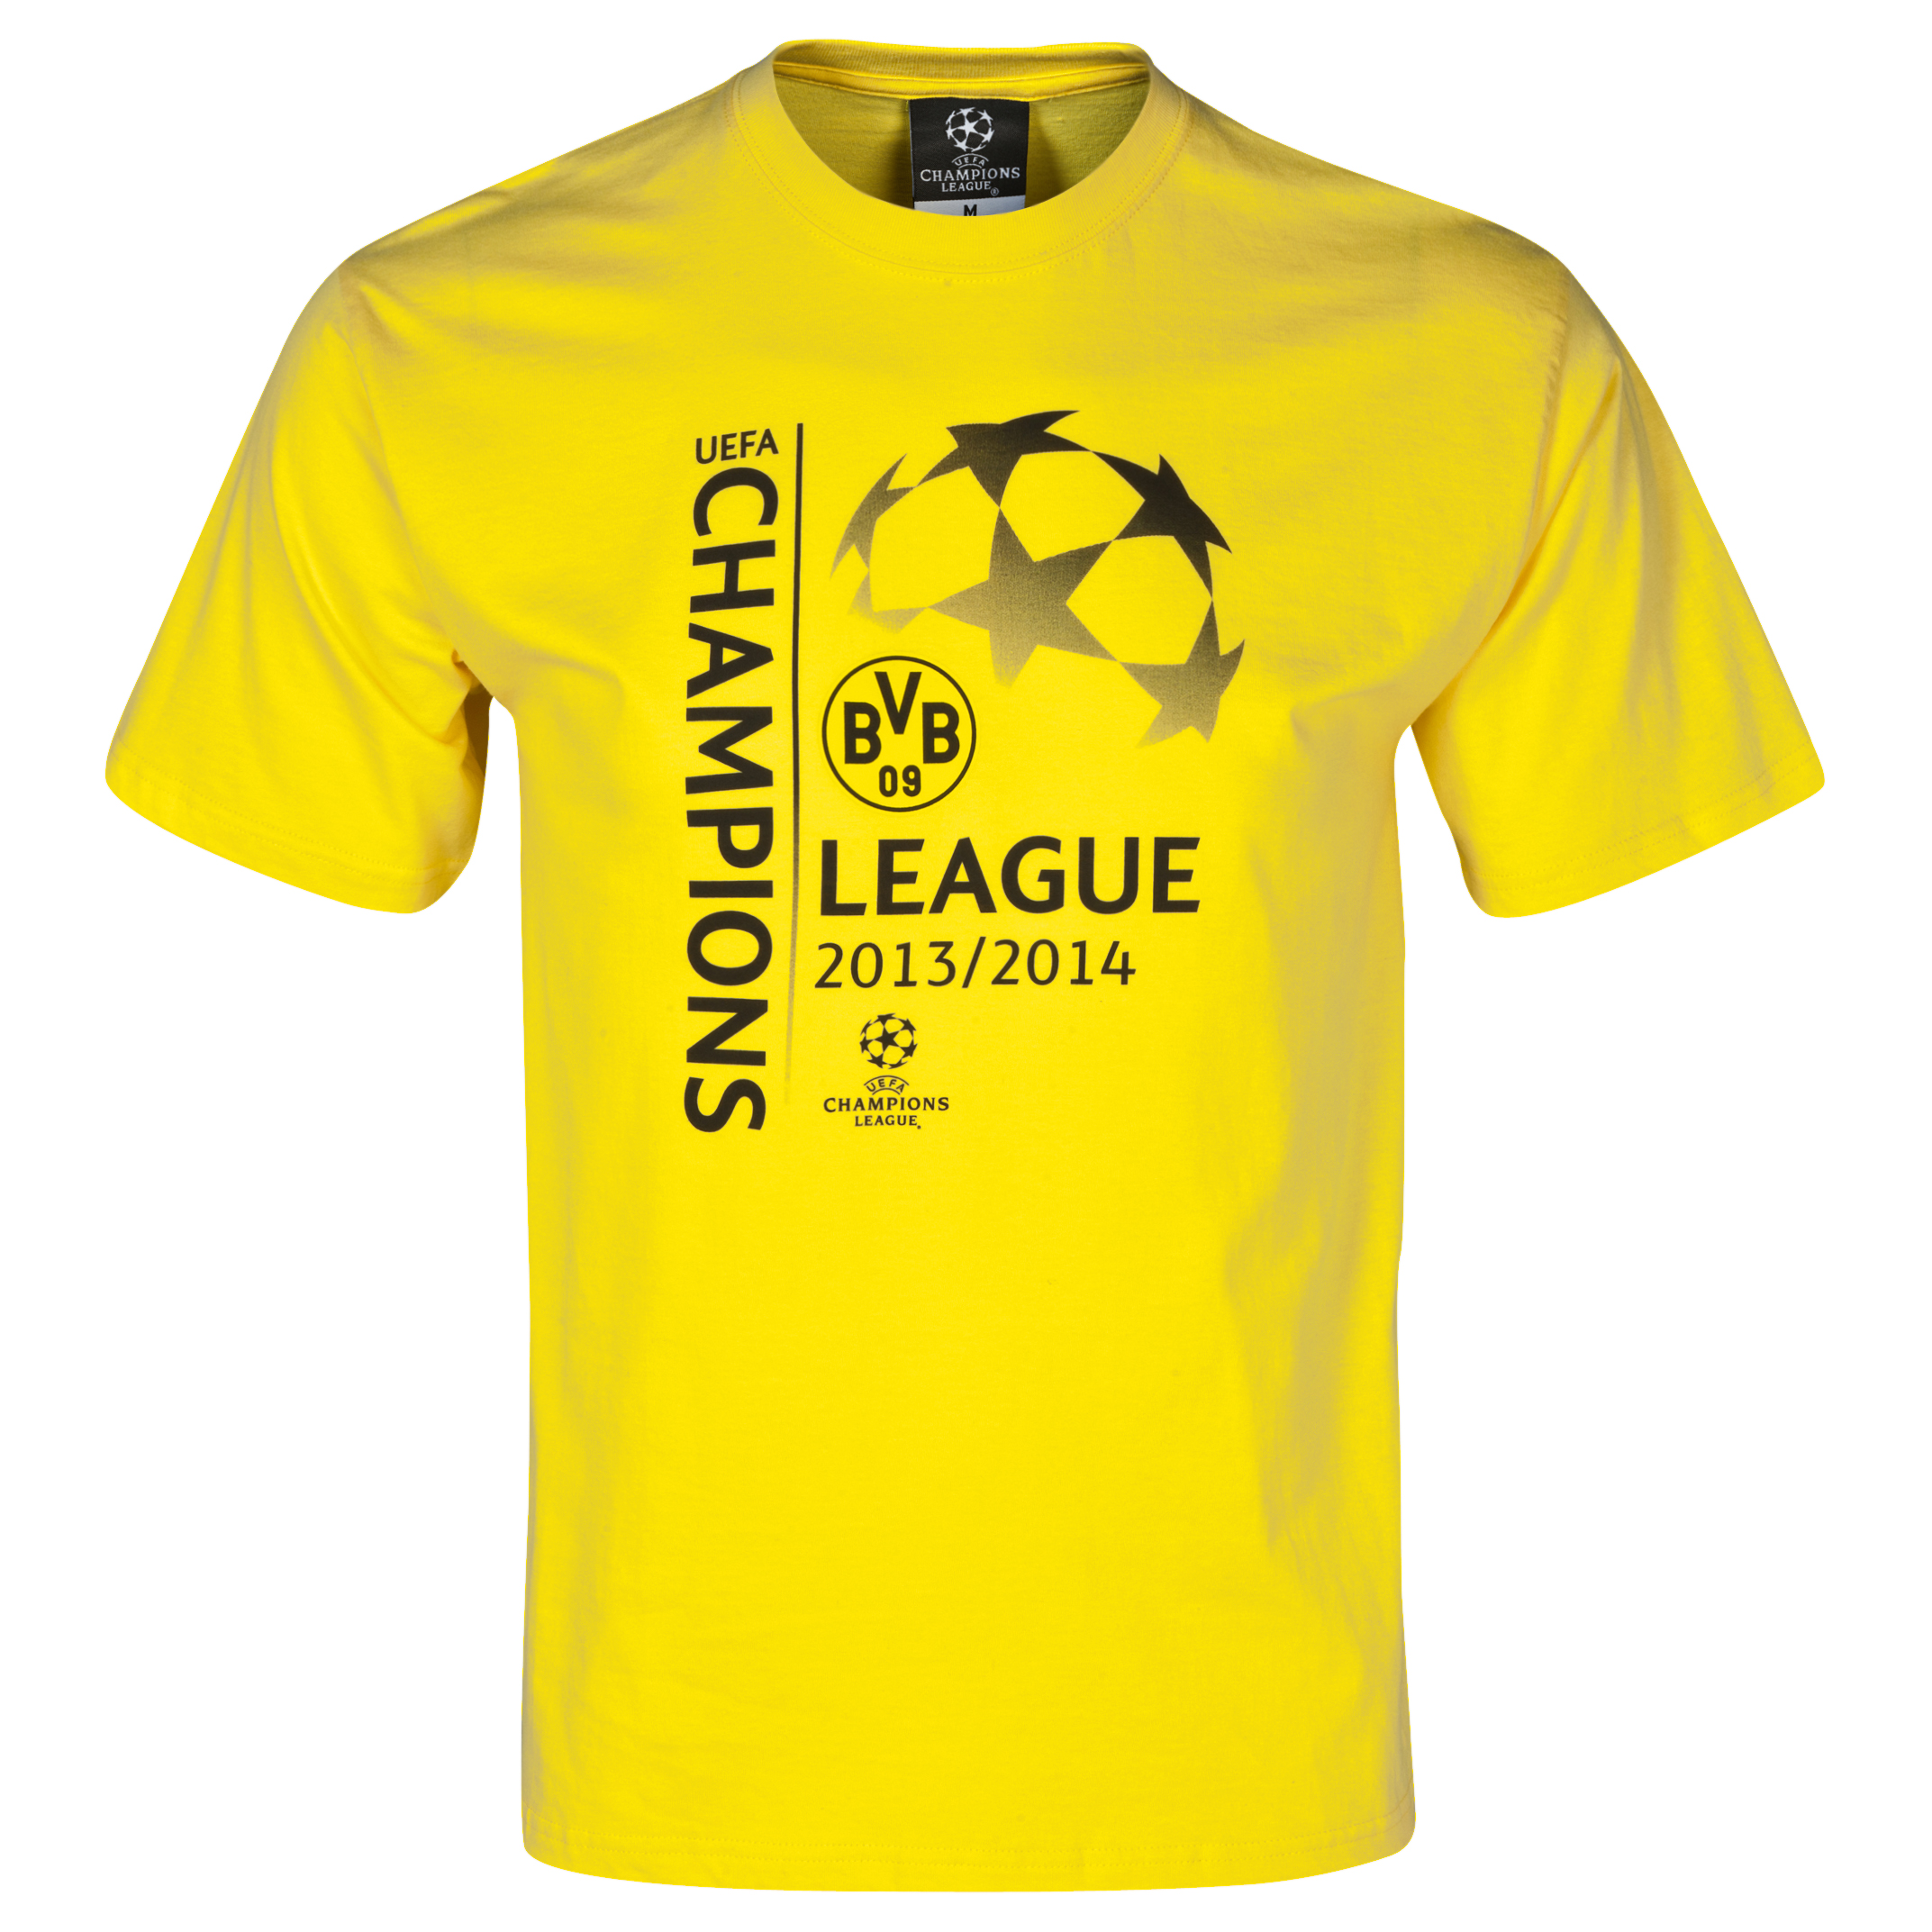 BVB UCL Graphic T-Shirt - Mens Yellow